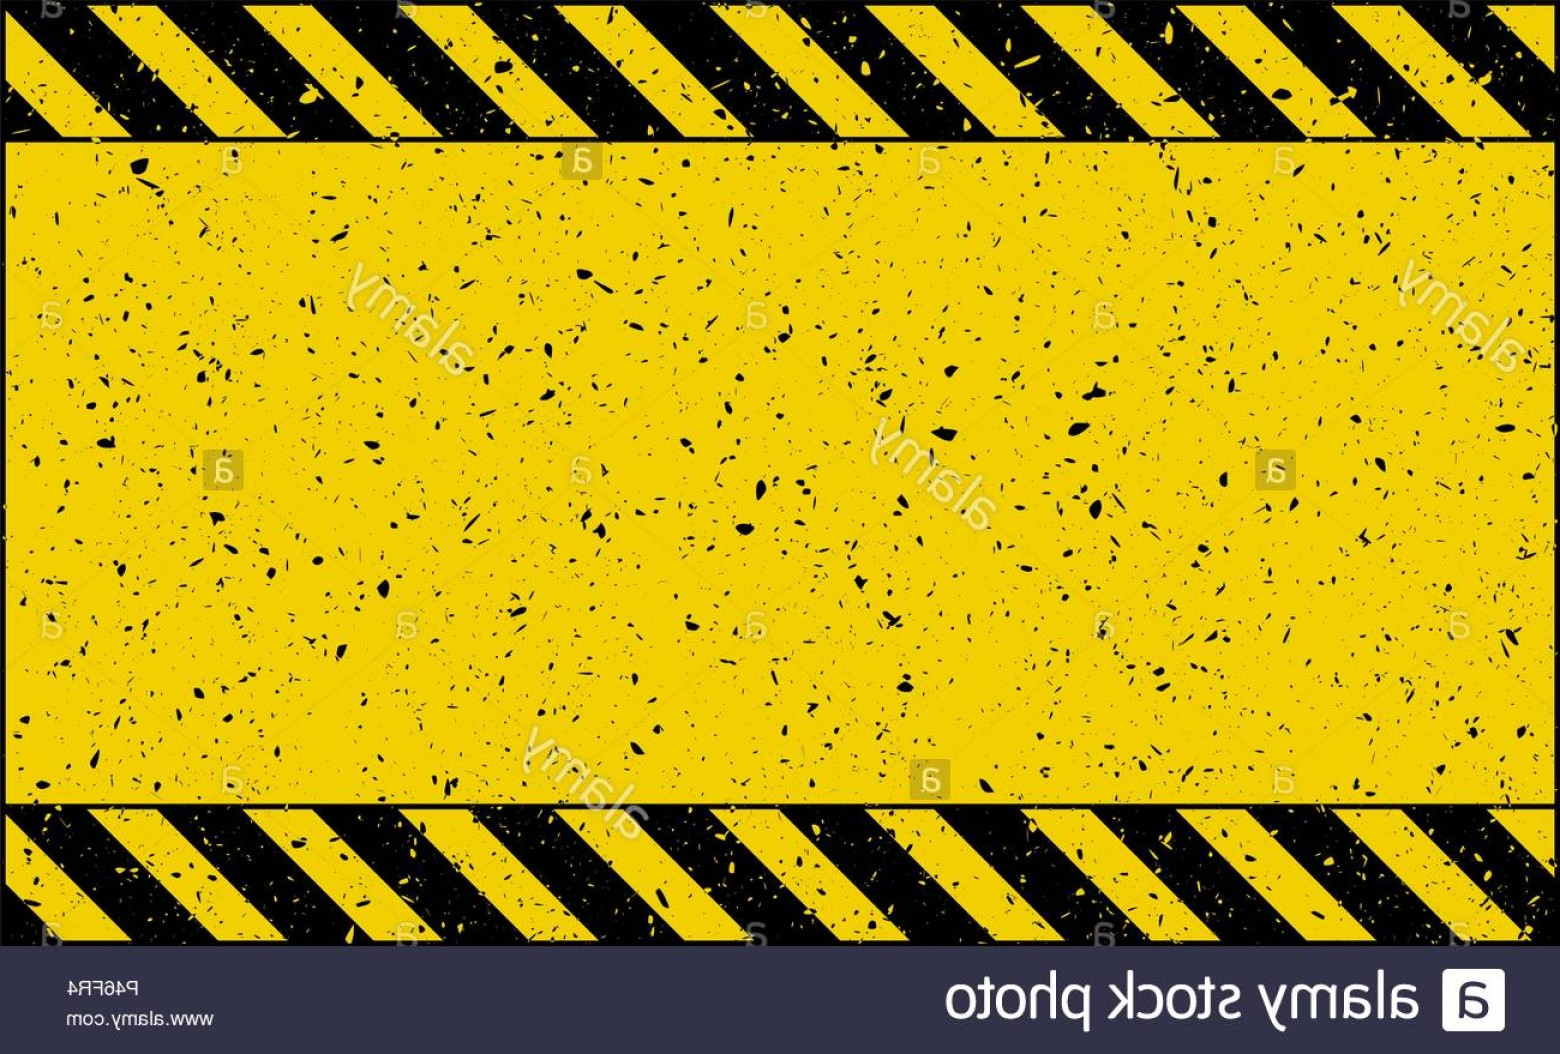 Construction tape clipart 1200x1200 background image library library Caution Tape Old Grunge Background Wallpaper Design Image | SOIDERGI image library library